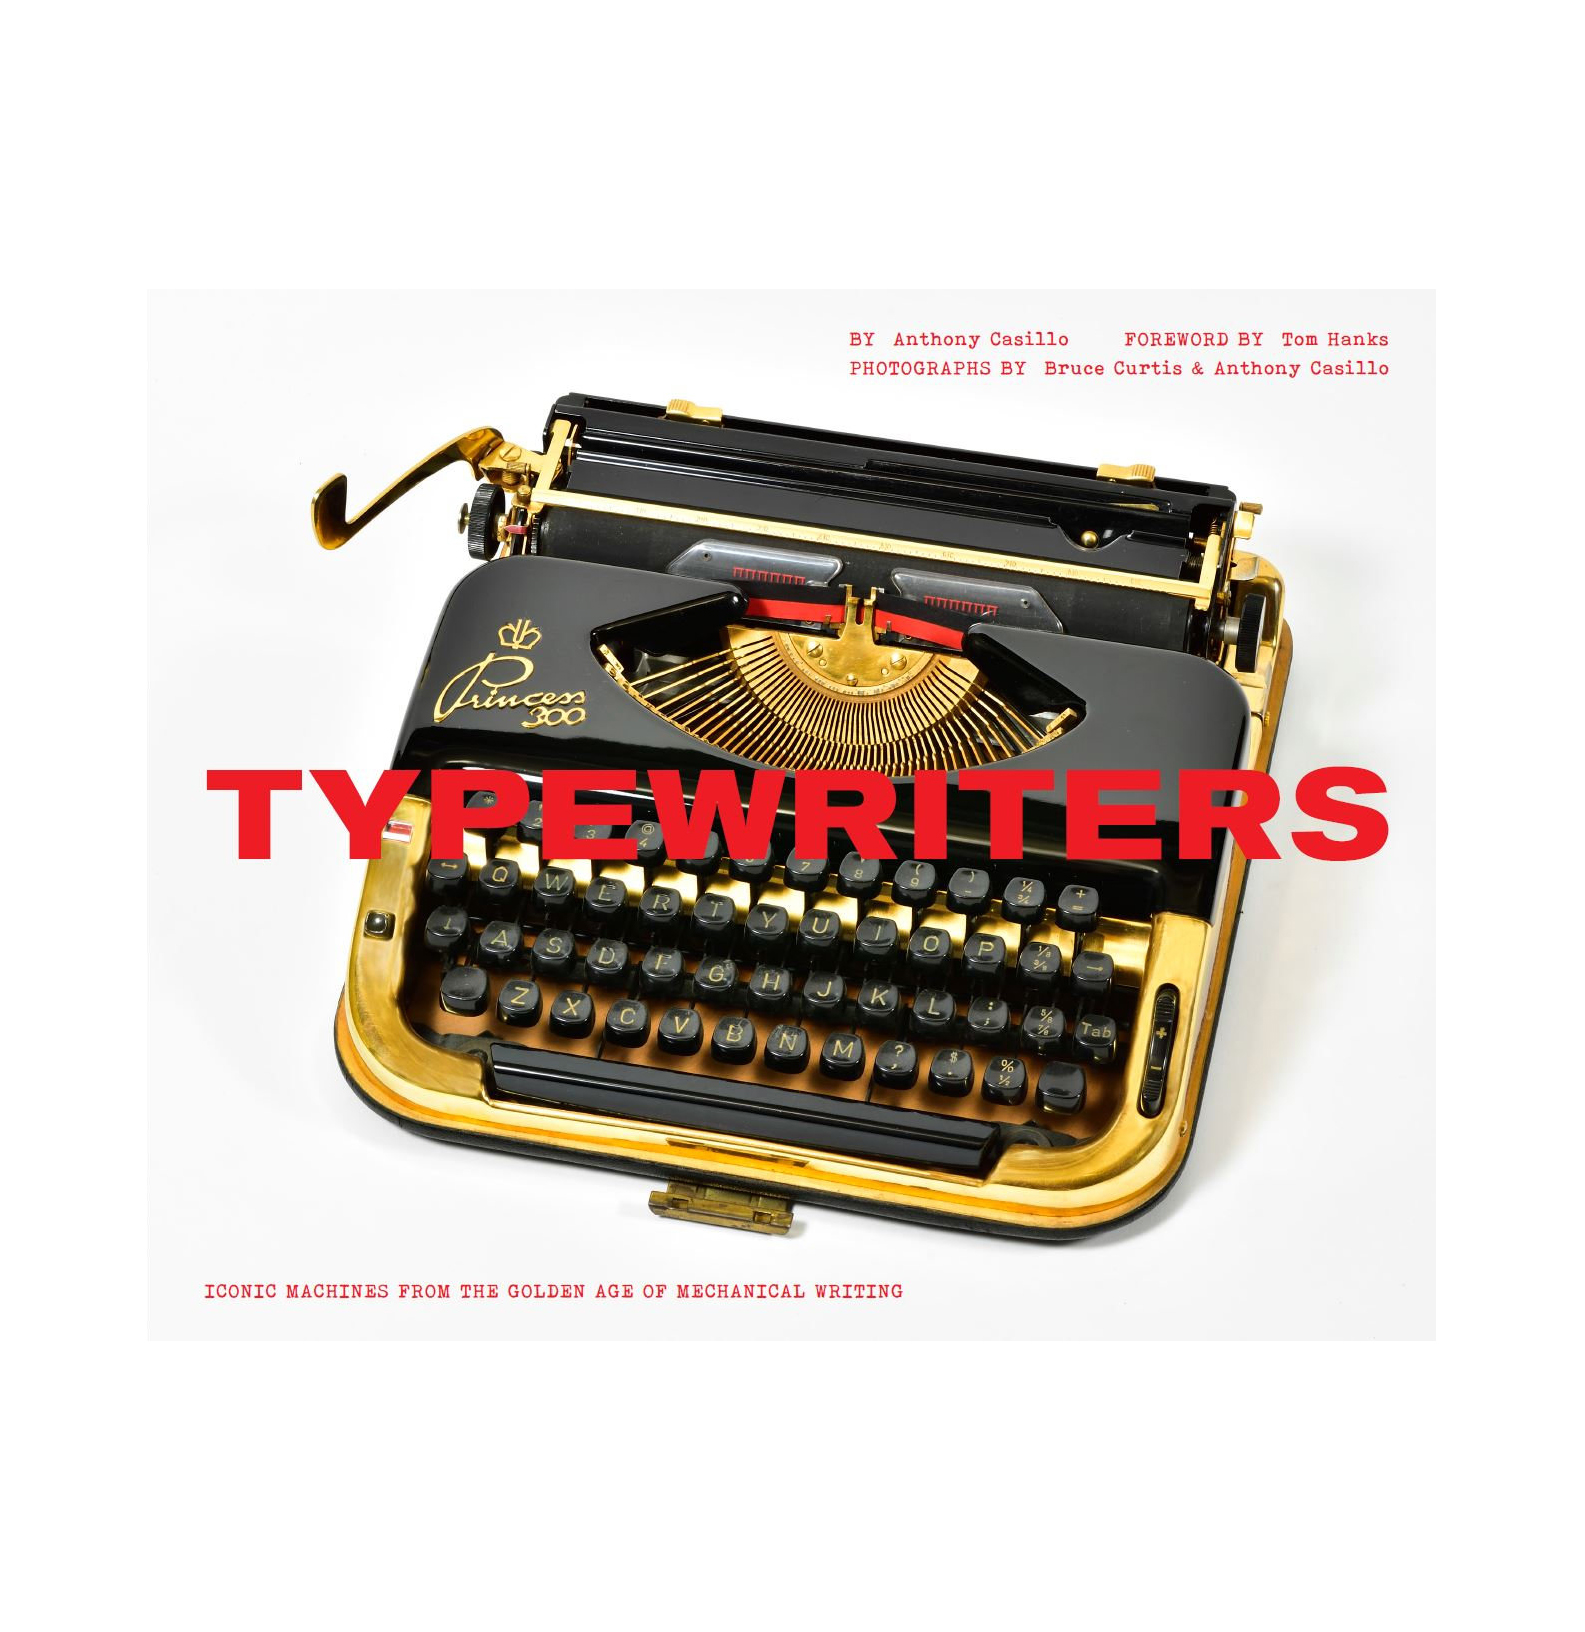 Typewriters: Iconic Machines from the Golden Age of Mechanical Writing, by Anthony Casillo